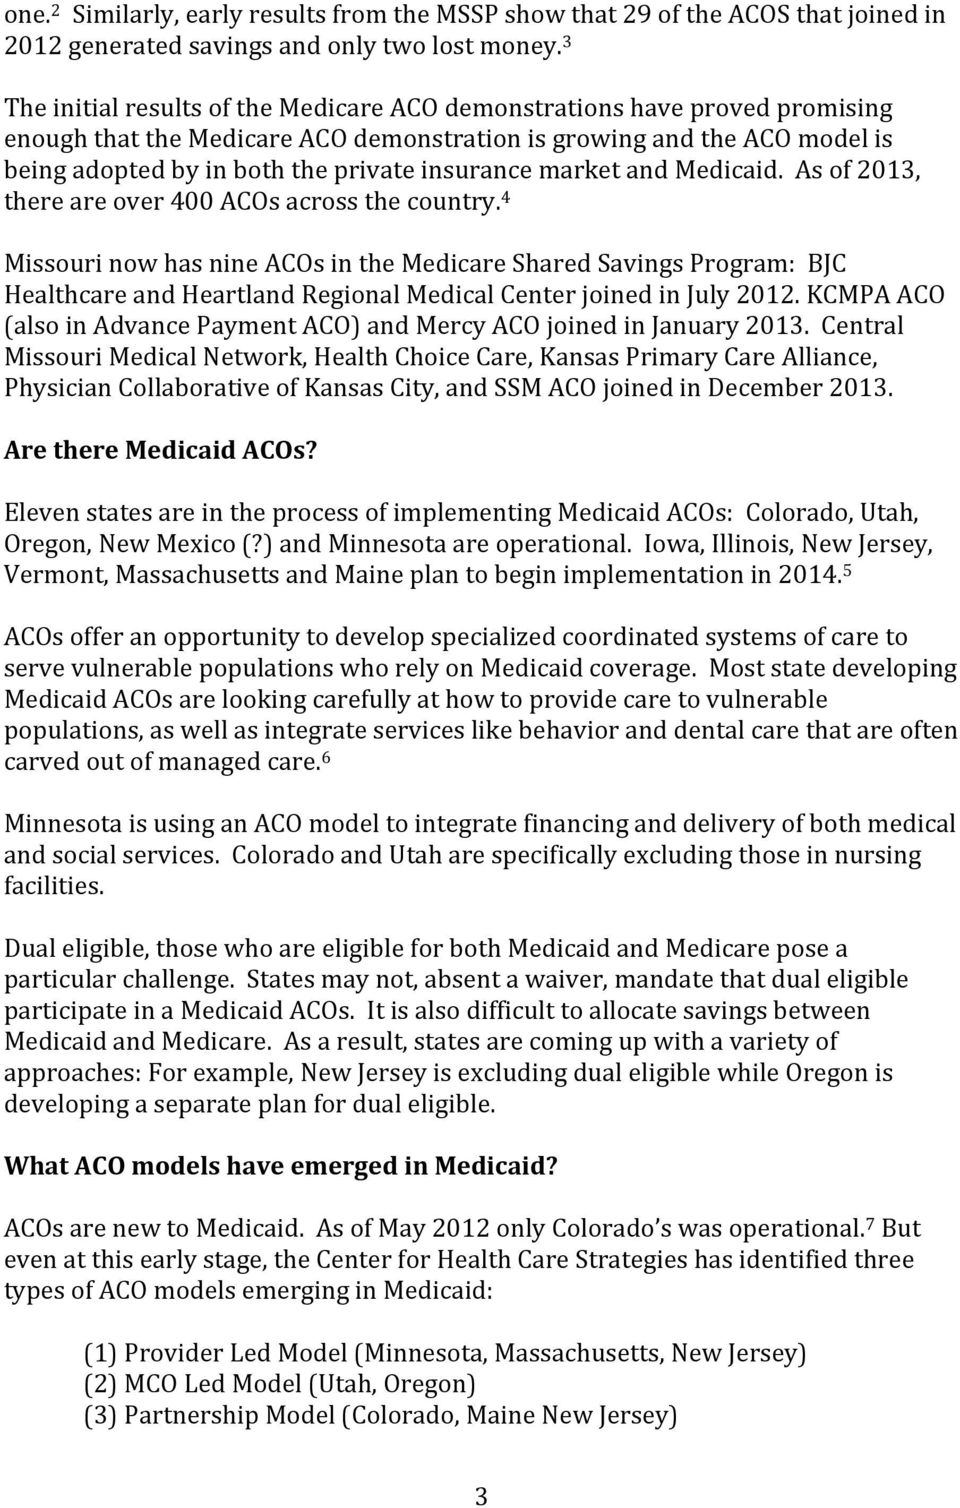 insurance market and Medicaid. As of 2013, there are over 400 ACOs across the country.